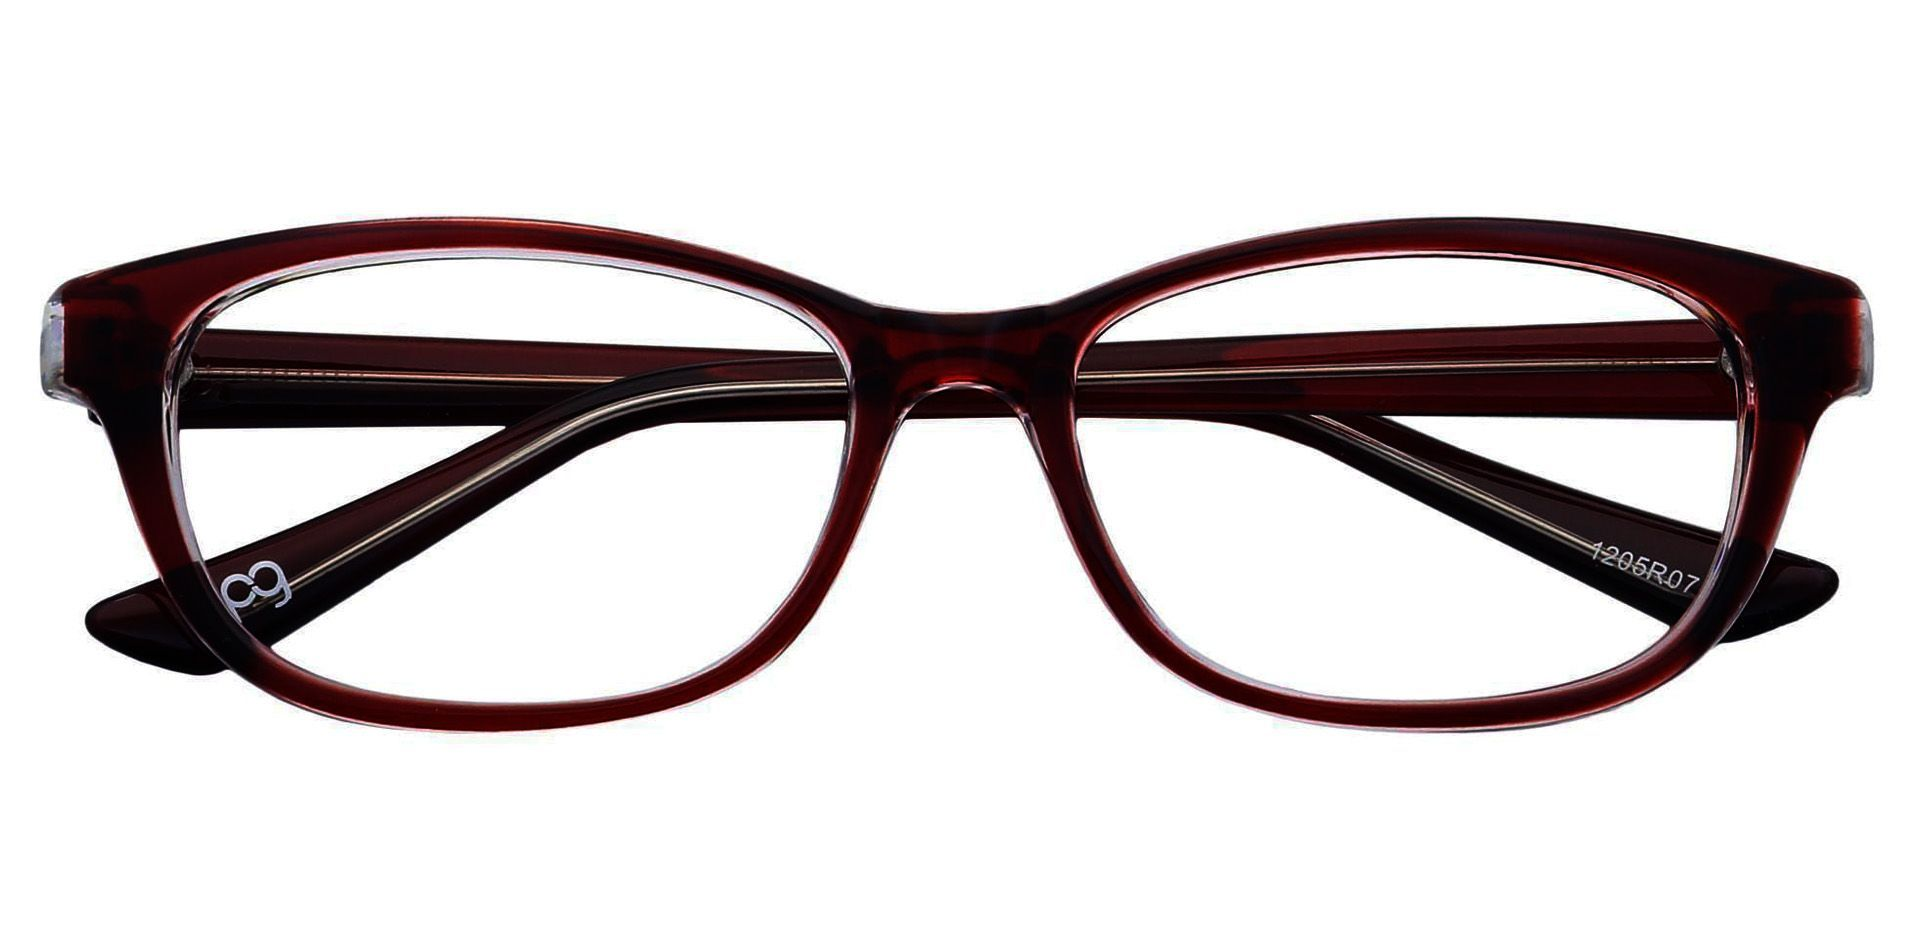 Reyna Classic Square Progressive Glasses - Red